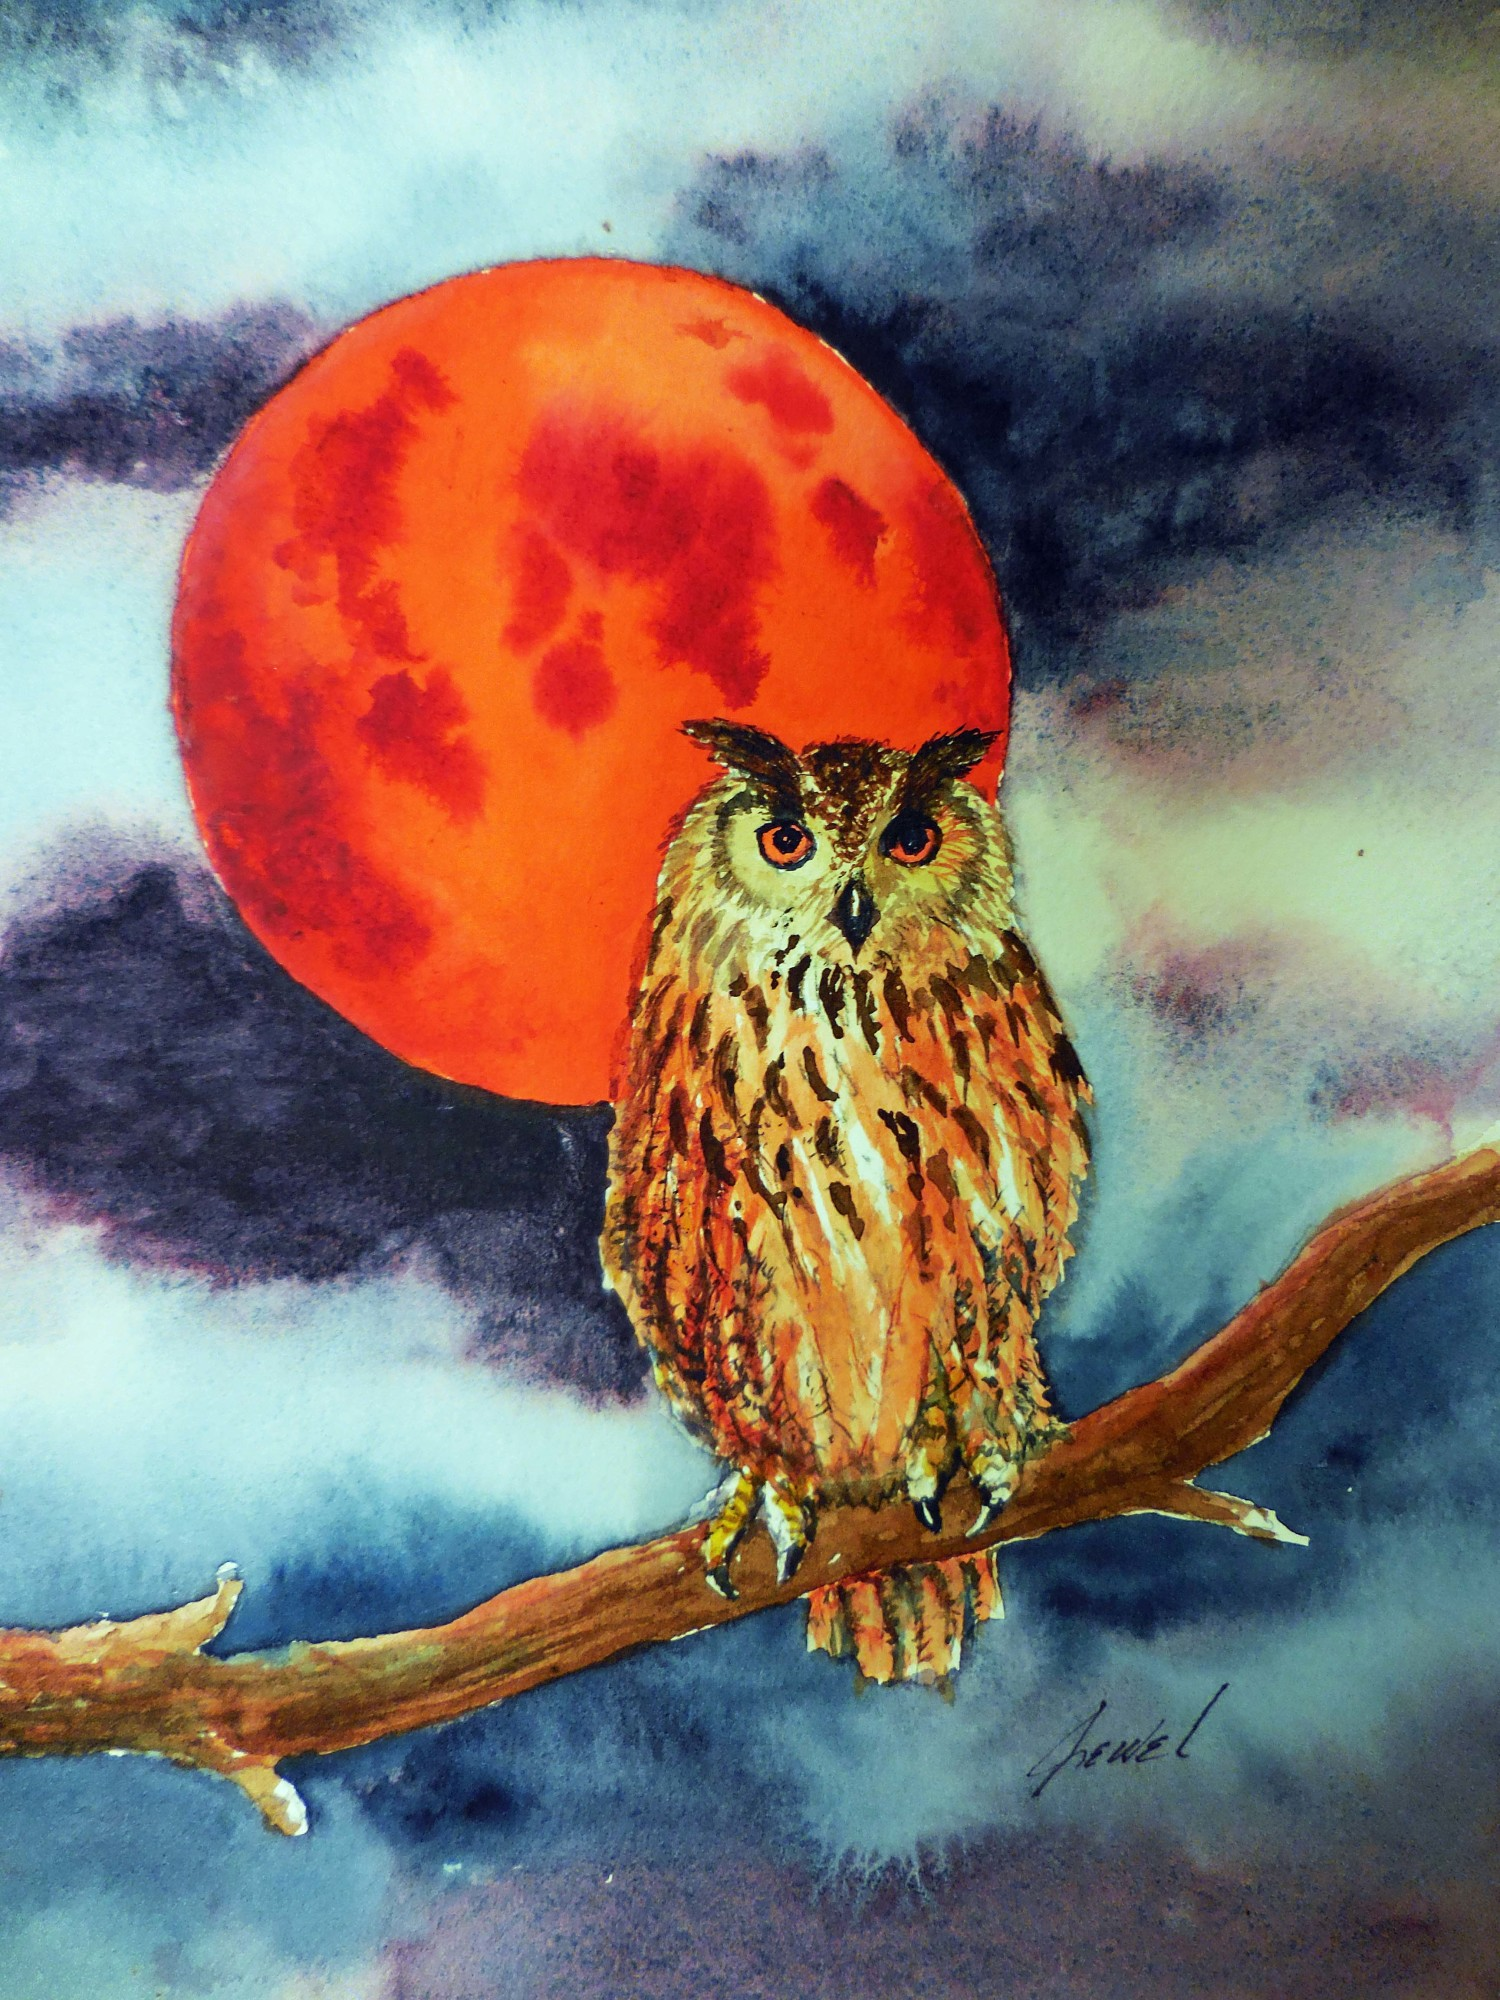 Jewel H. painted this owl and harvest moon